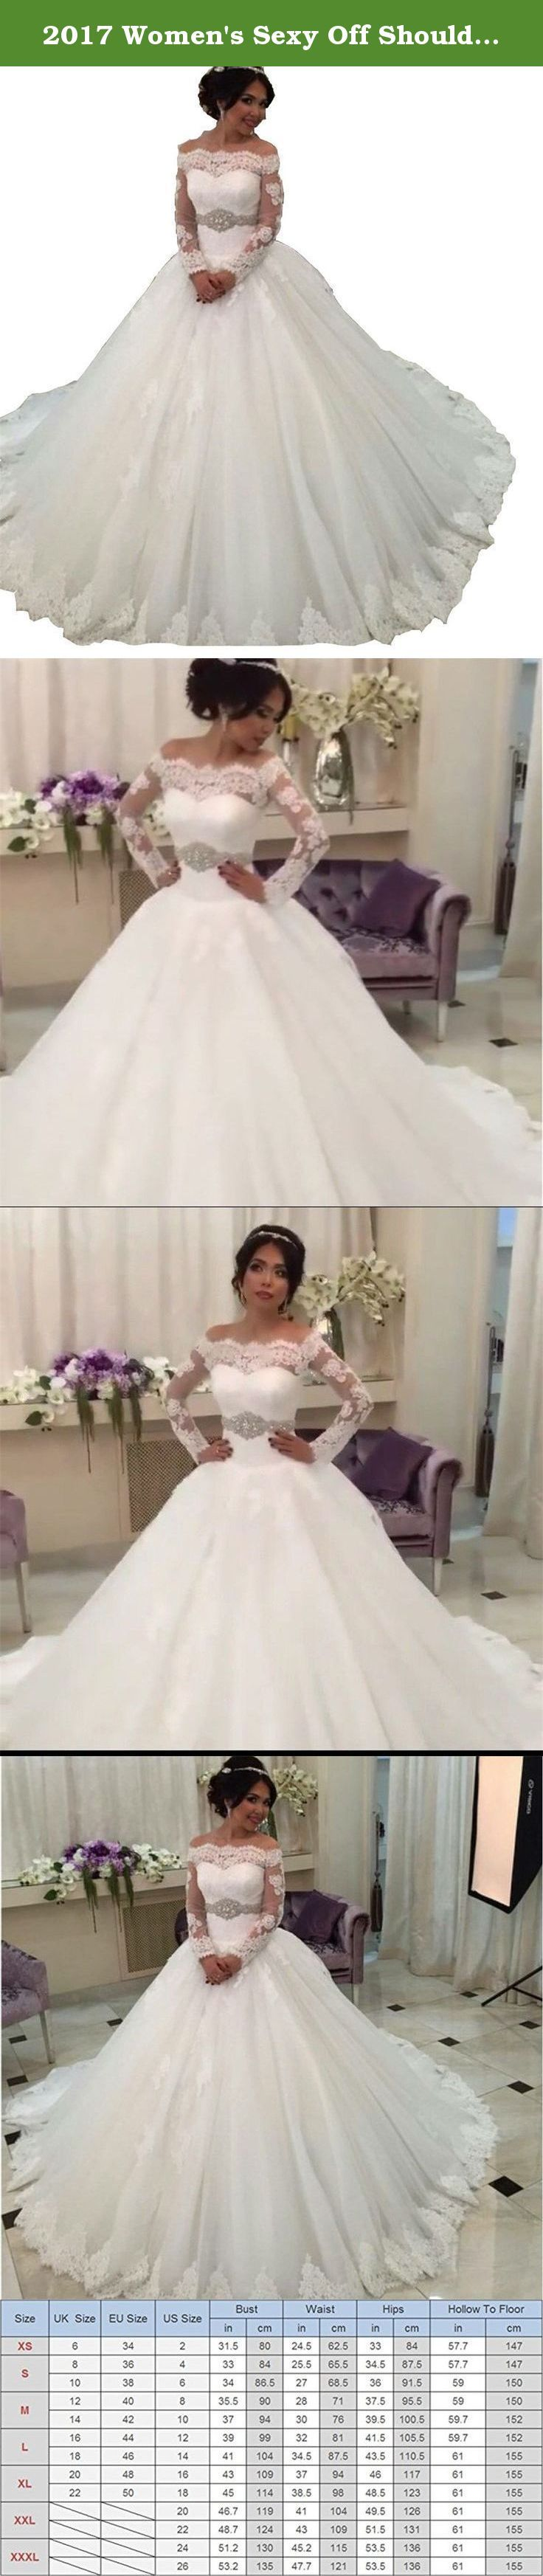 "2017 Women's Sexy Off Shoulder Long Sleeve Plus Size Wedding Dresses Ivory US20 Size. Welcome to Veiai, we're a professional manufacturer and seller of wedding dresses. We offer high quality dresses to our customers. The real color of the item may be slightly different from the pictures shown on website caused by many factors such as Computer screen brightness?Wish understand,Thanks:)! Please Use The Size Chart Image on the Left . Do not use Amazon's ""Size Chart""link . Item Description..."